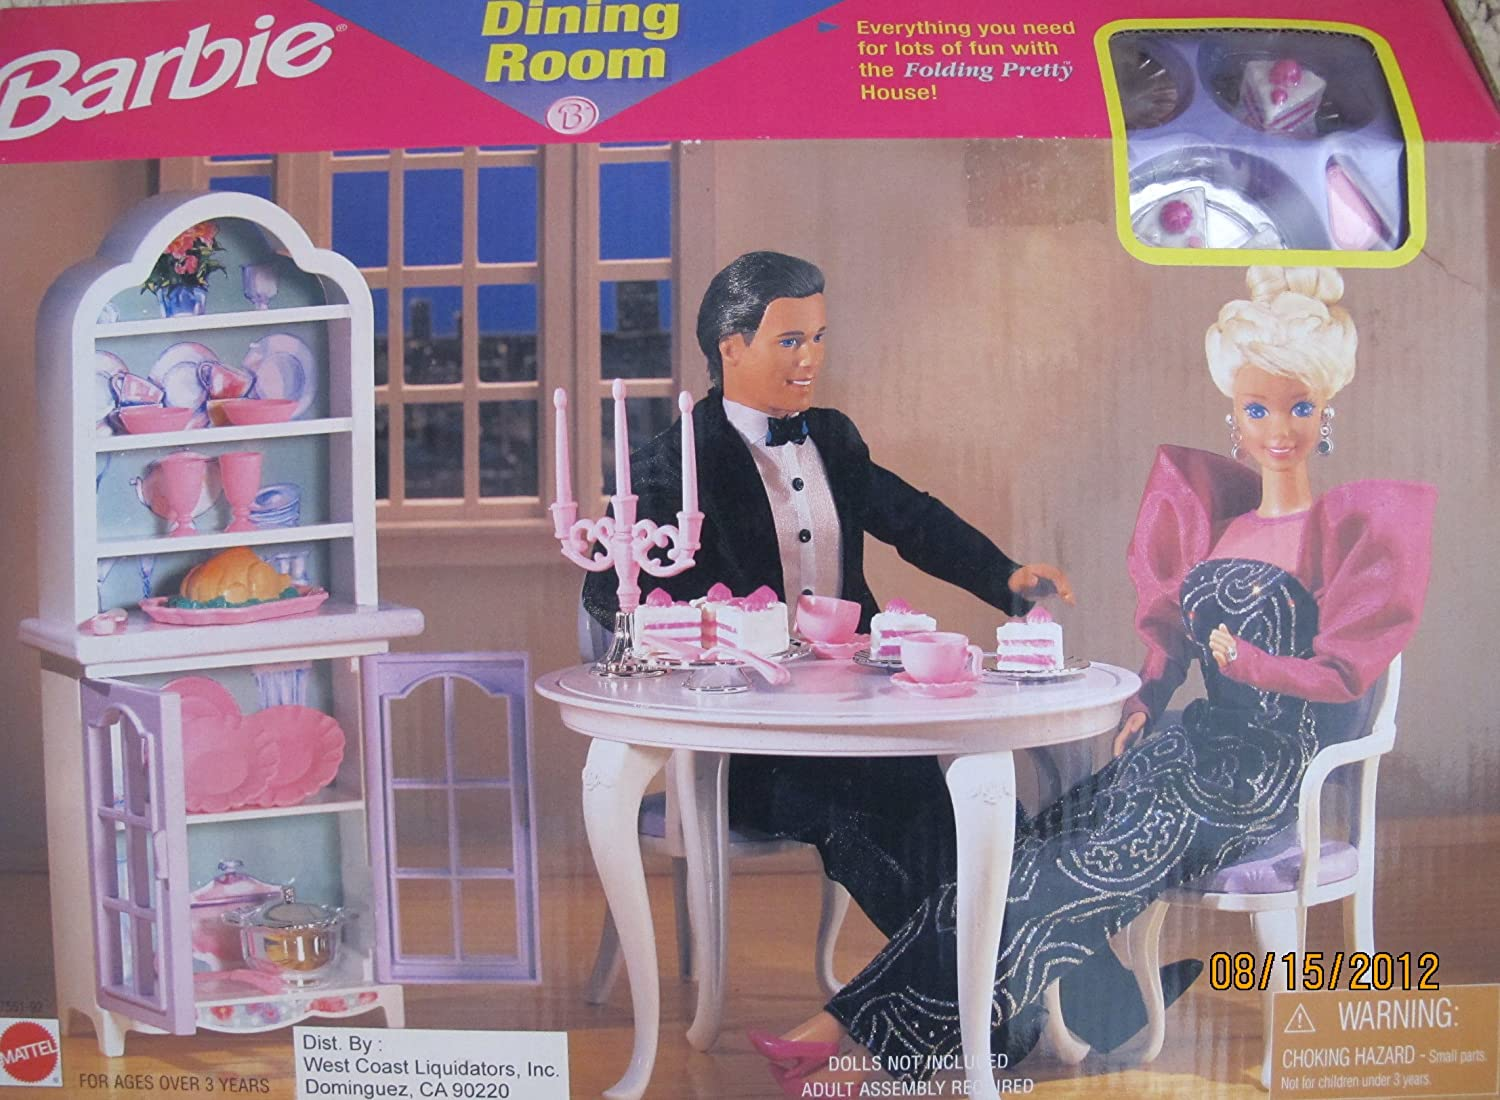 BARBIE DINING ROOM PLAYSET Can Be Used w FOLDING PRETTY HOUSE (1997 Arcotoys, Mattel)